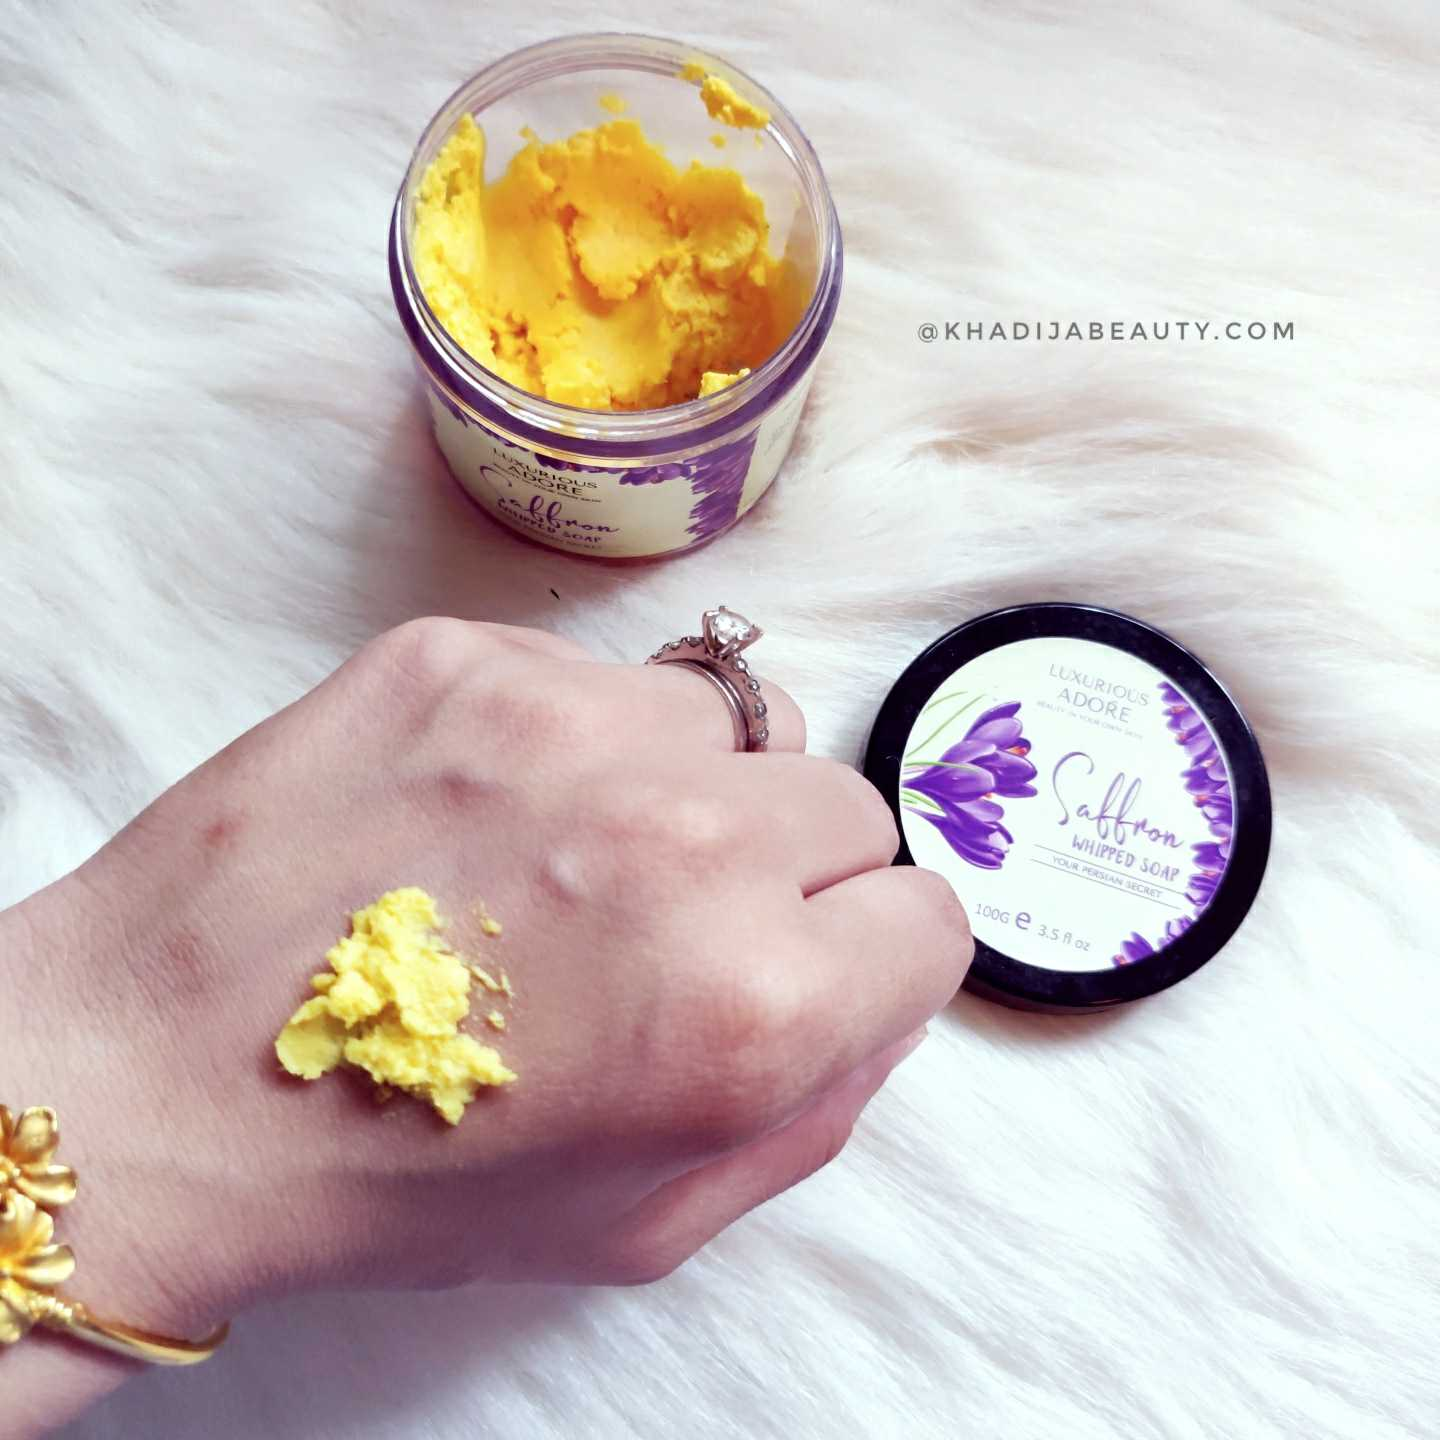 Luxurious adore Saffron whipped soap review